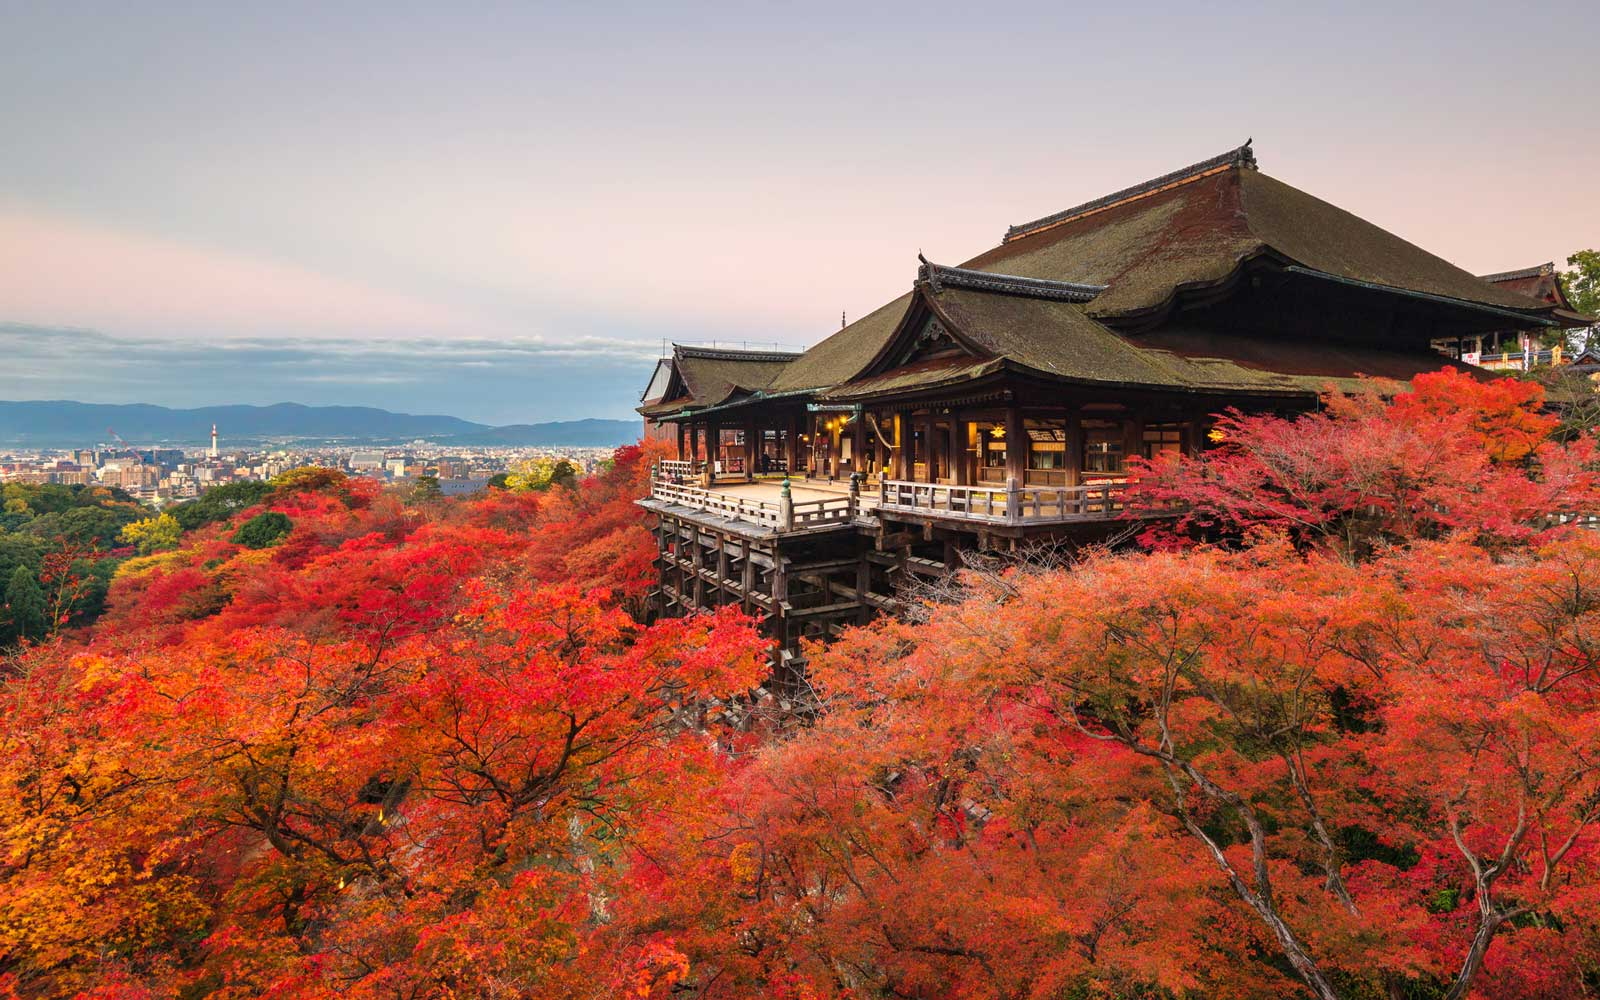 Overlook of Kiyomizu-dera temple in Autumn, in Japan